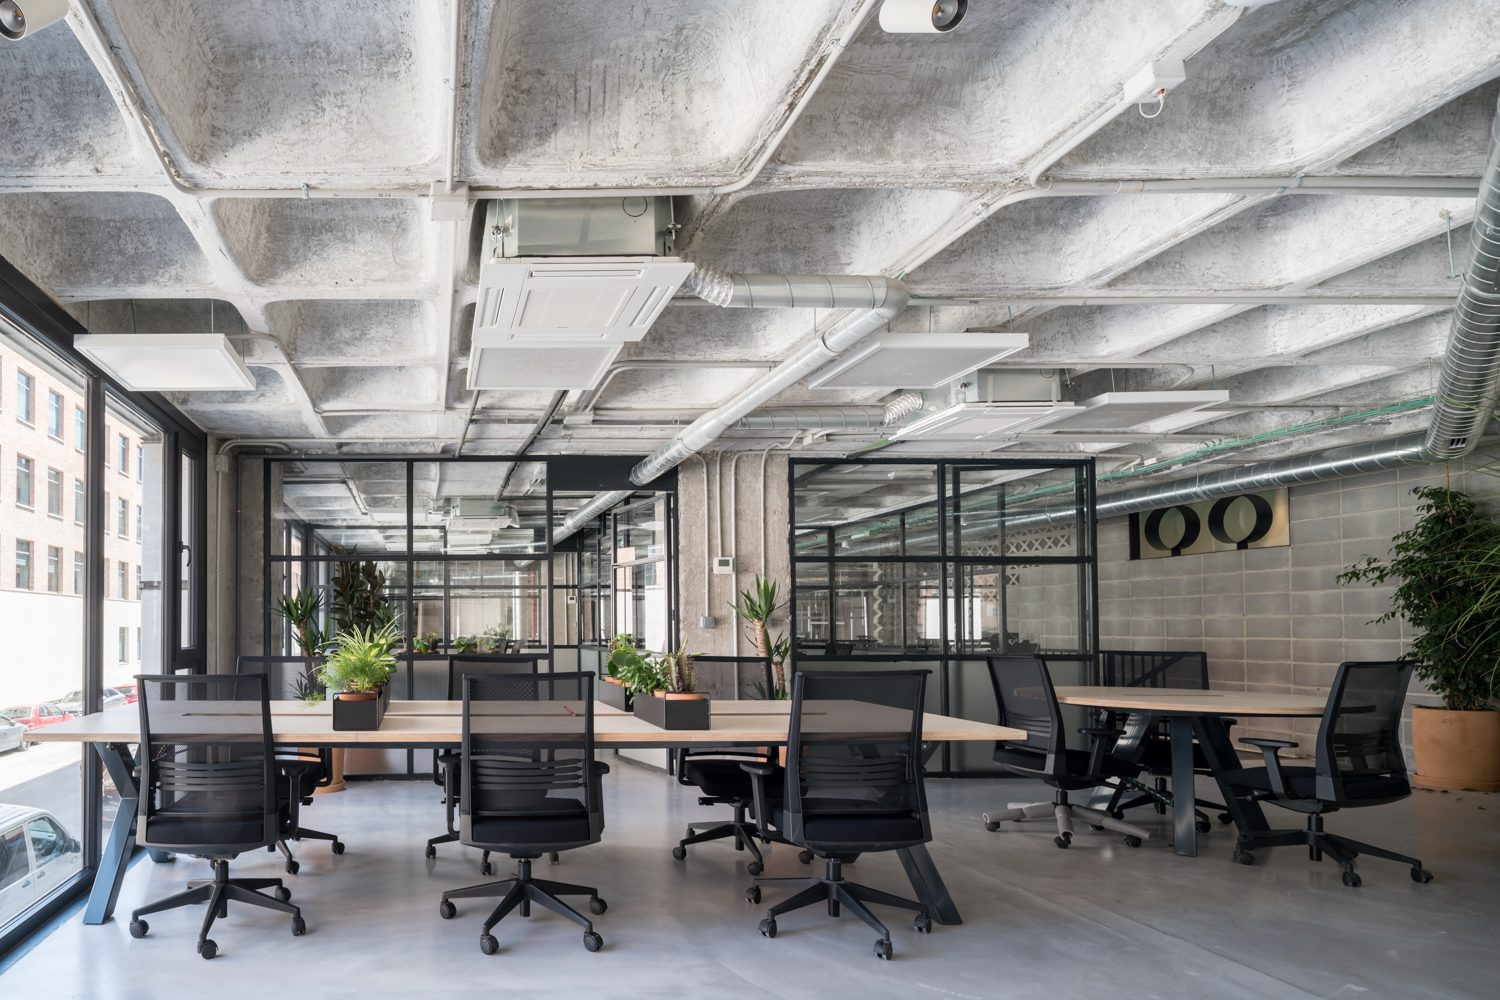 Concrete ceilings and glass partitions organize the office areas.